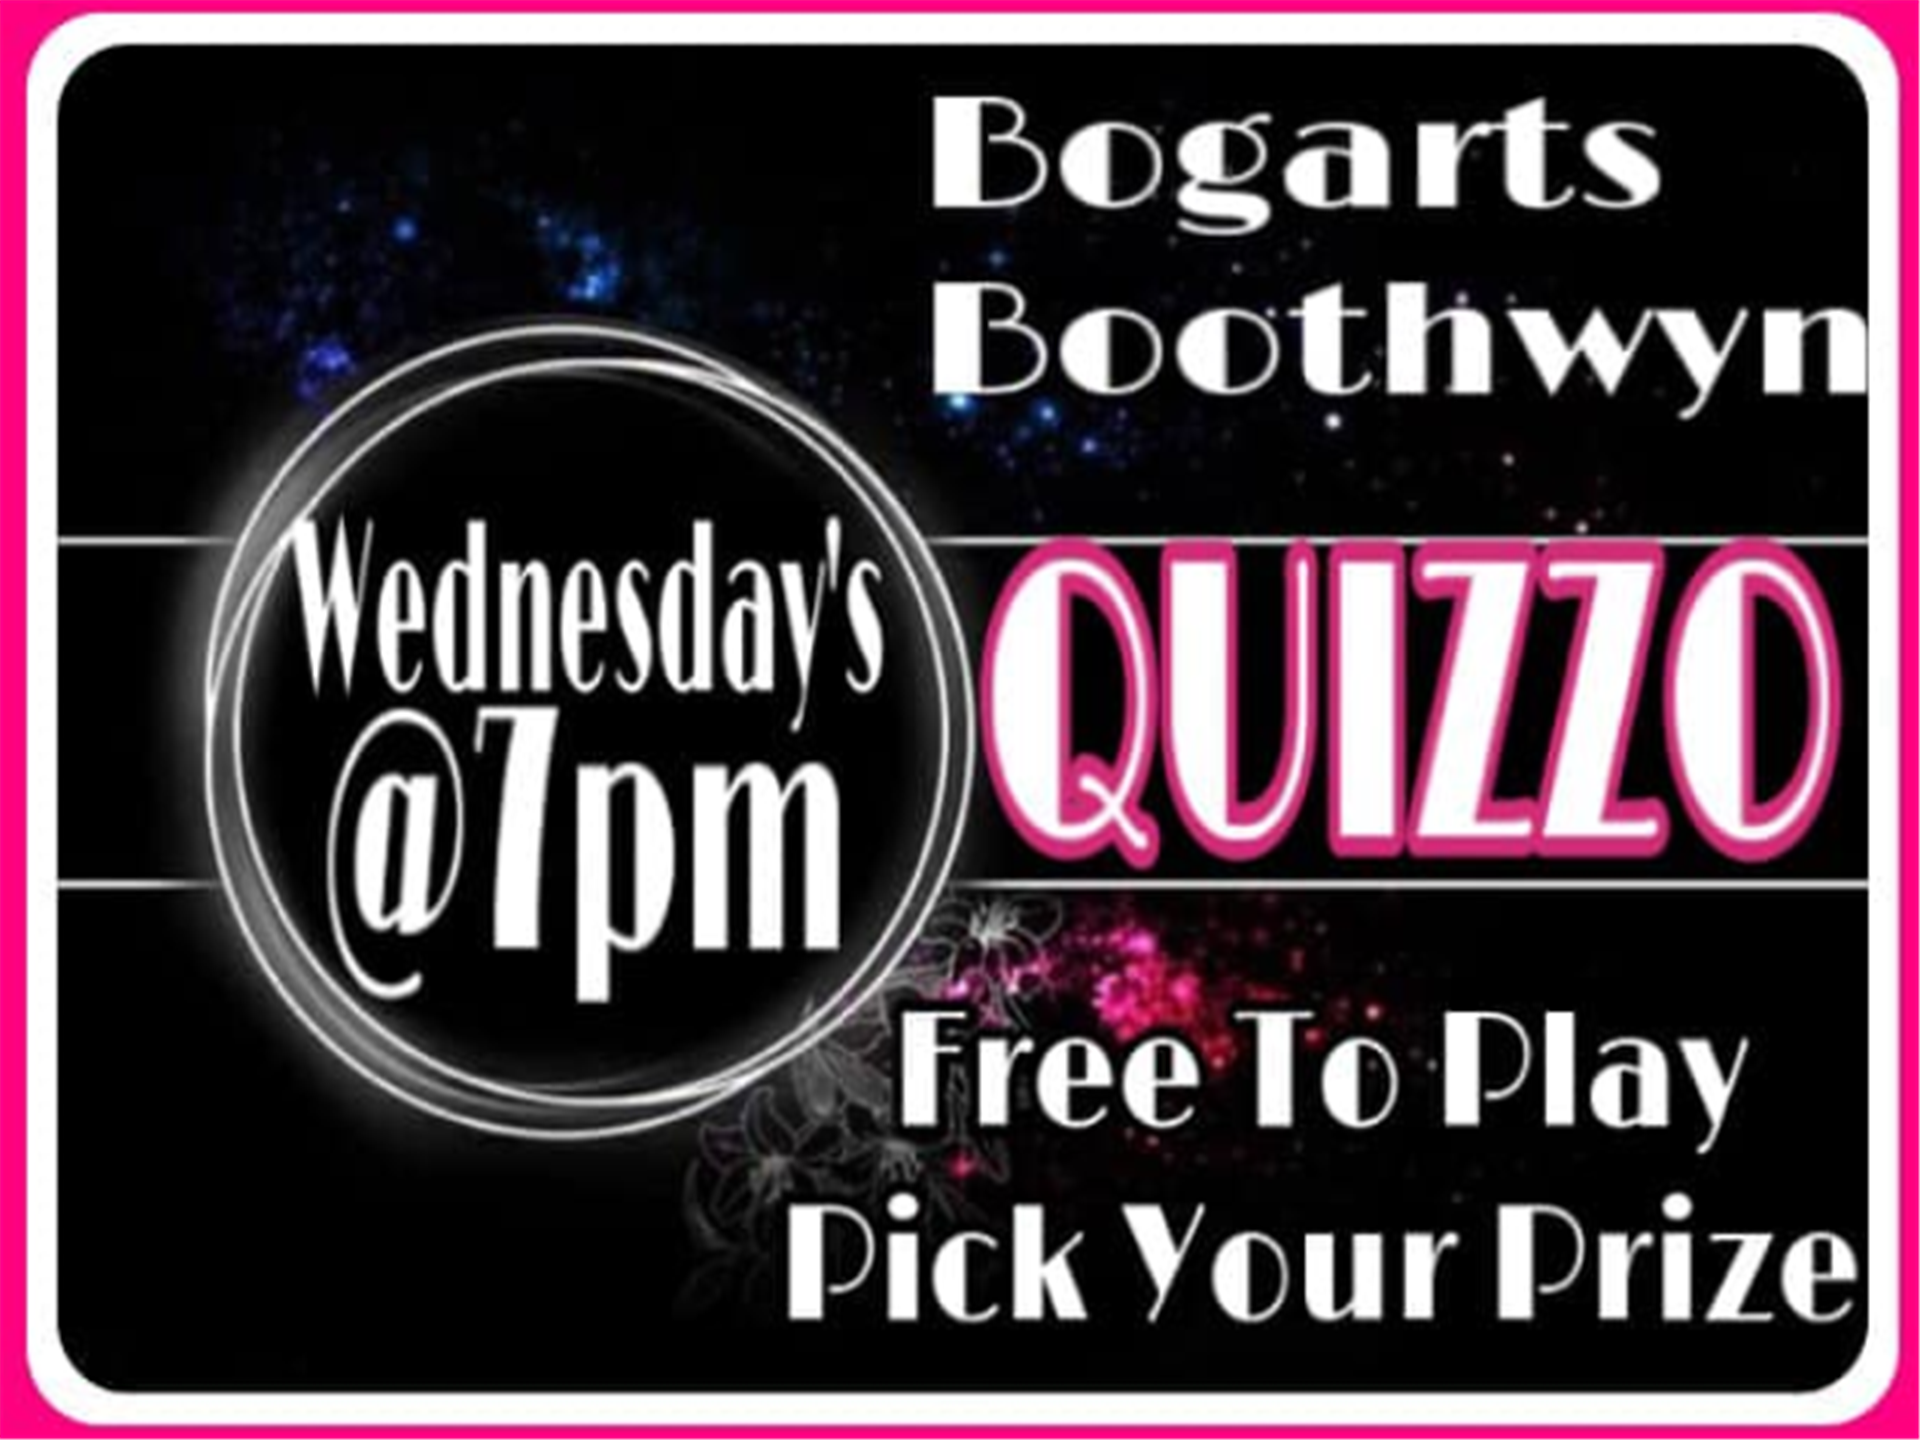 bogarts boothwyn quizzo wednedsays at 7pm free to play - pick your prize